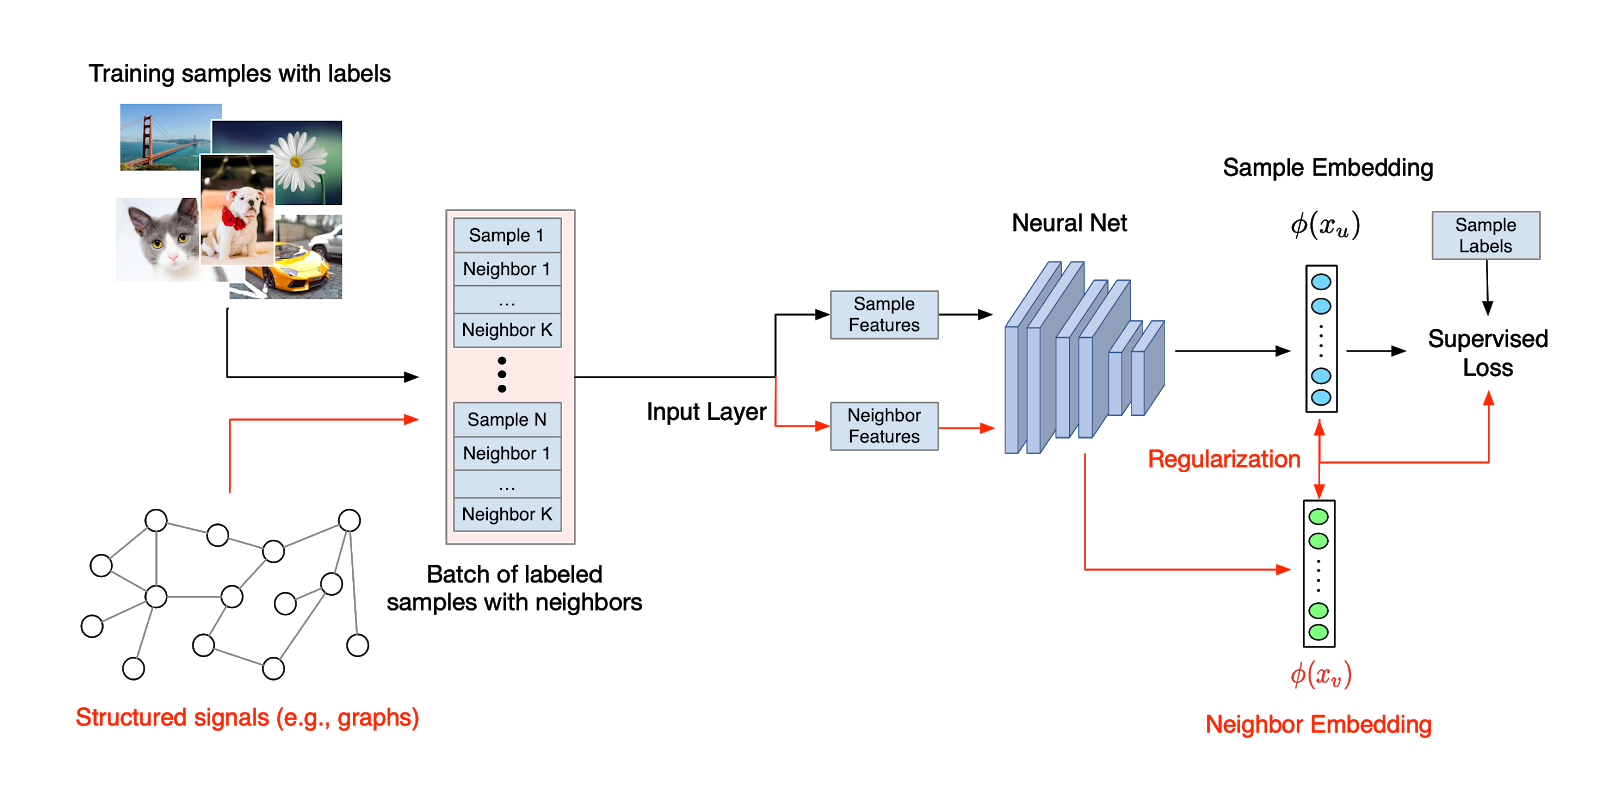 Diagram of structured signals in addition to regular images being used as training data for a neural network